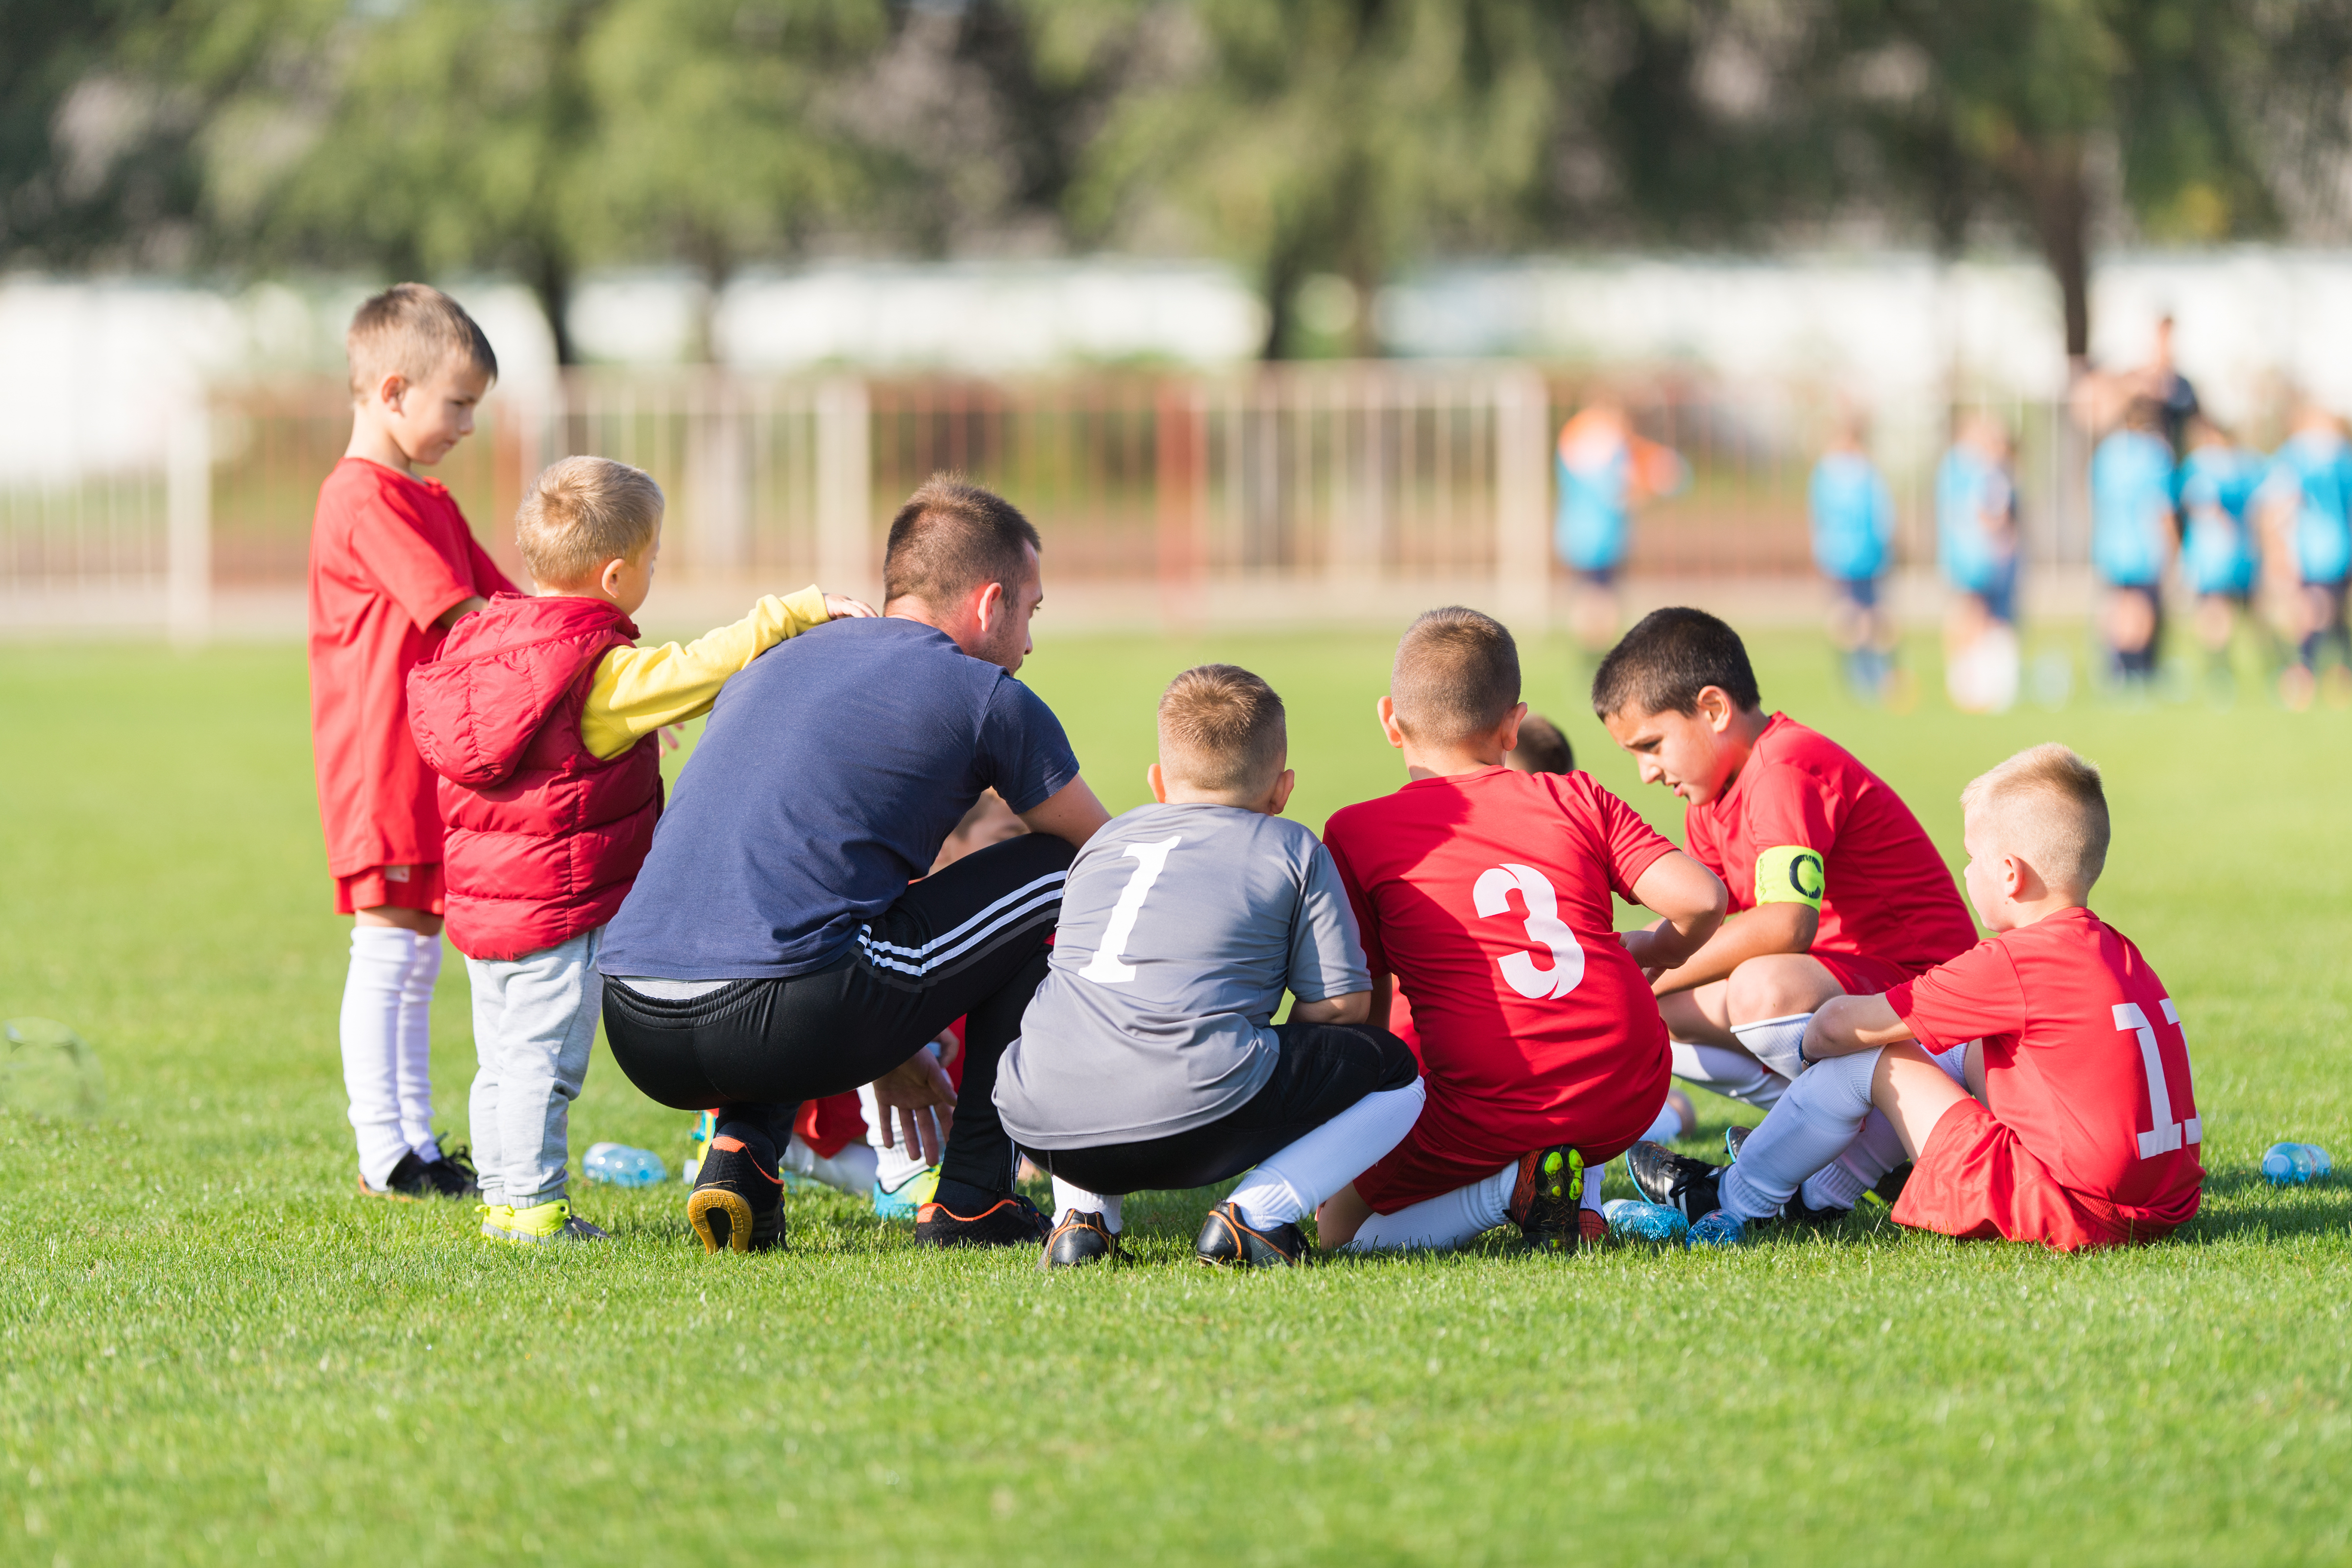 Soccer coach talking to a team of children